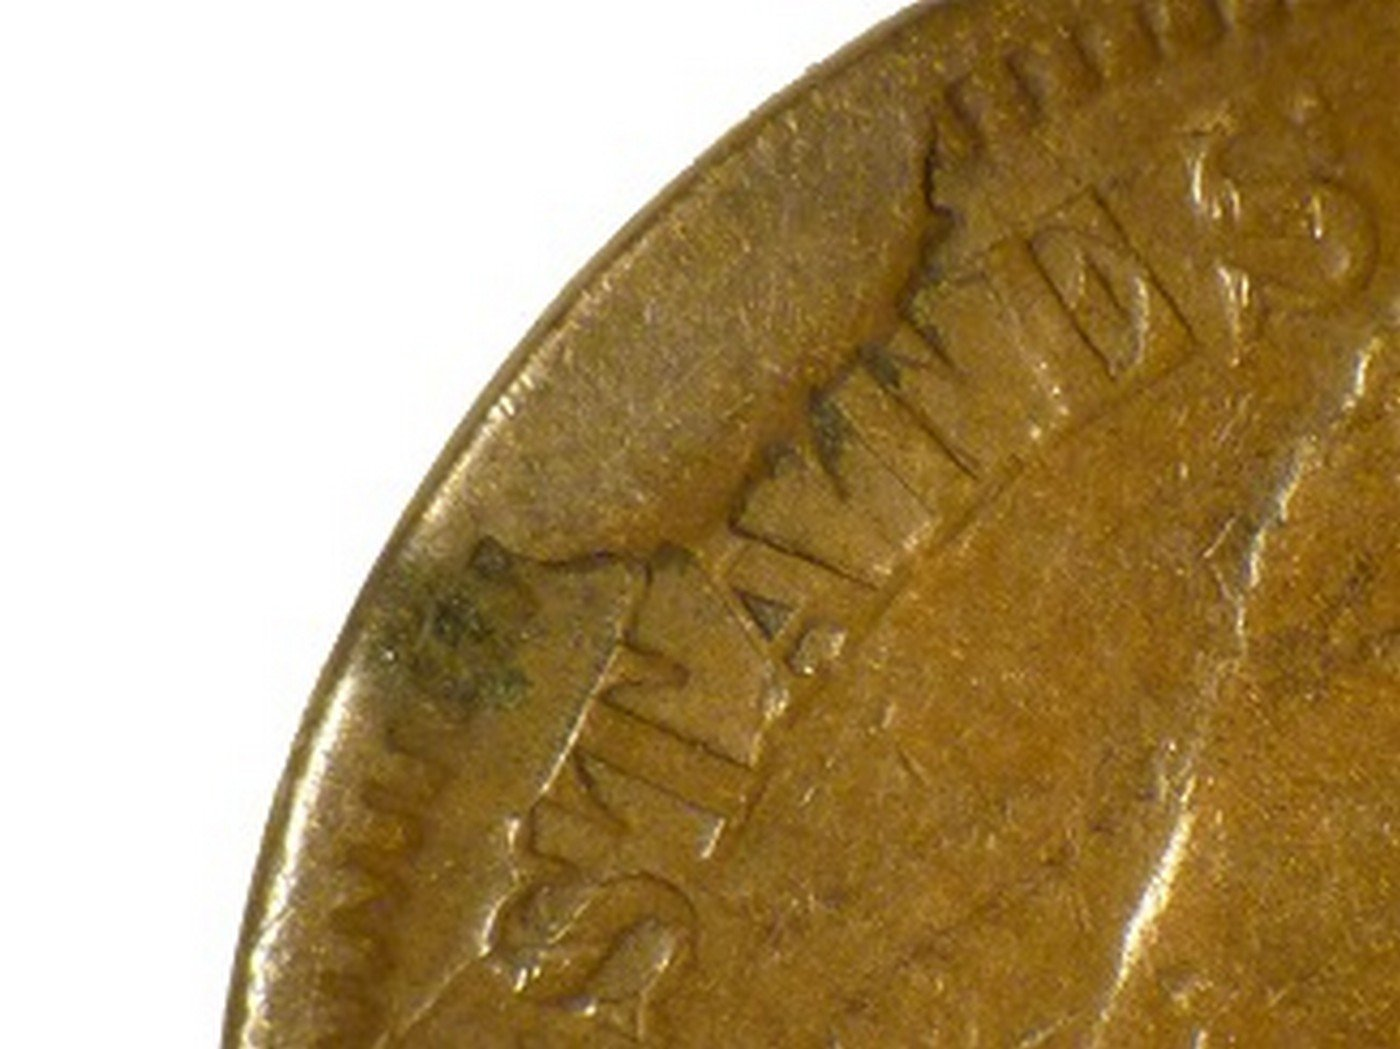 1866 CUD-001 - Indian Head Penny - Photo by David Poliquin